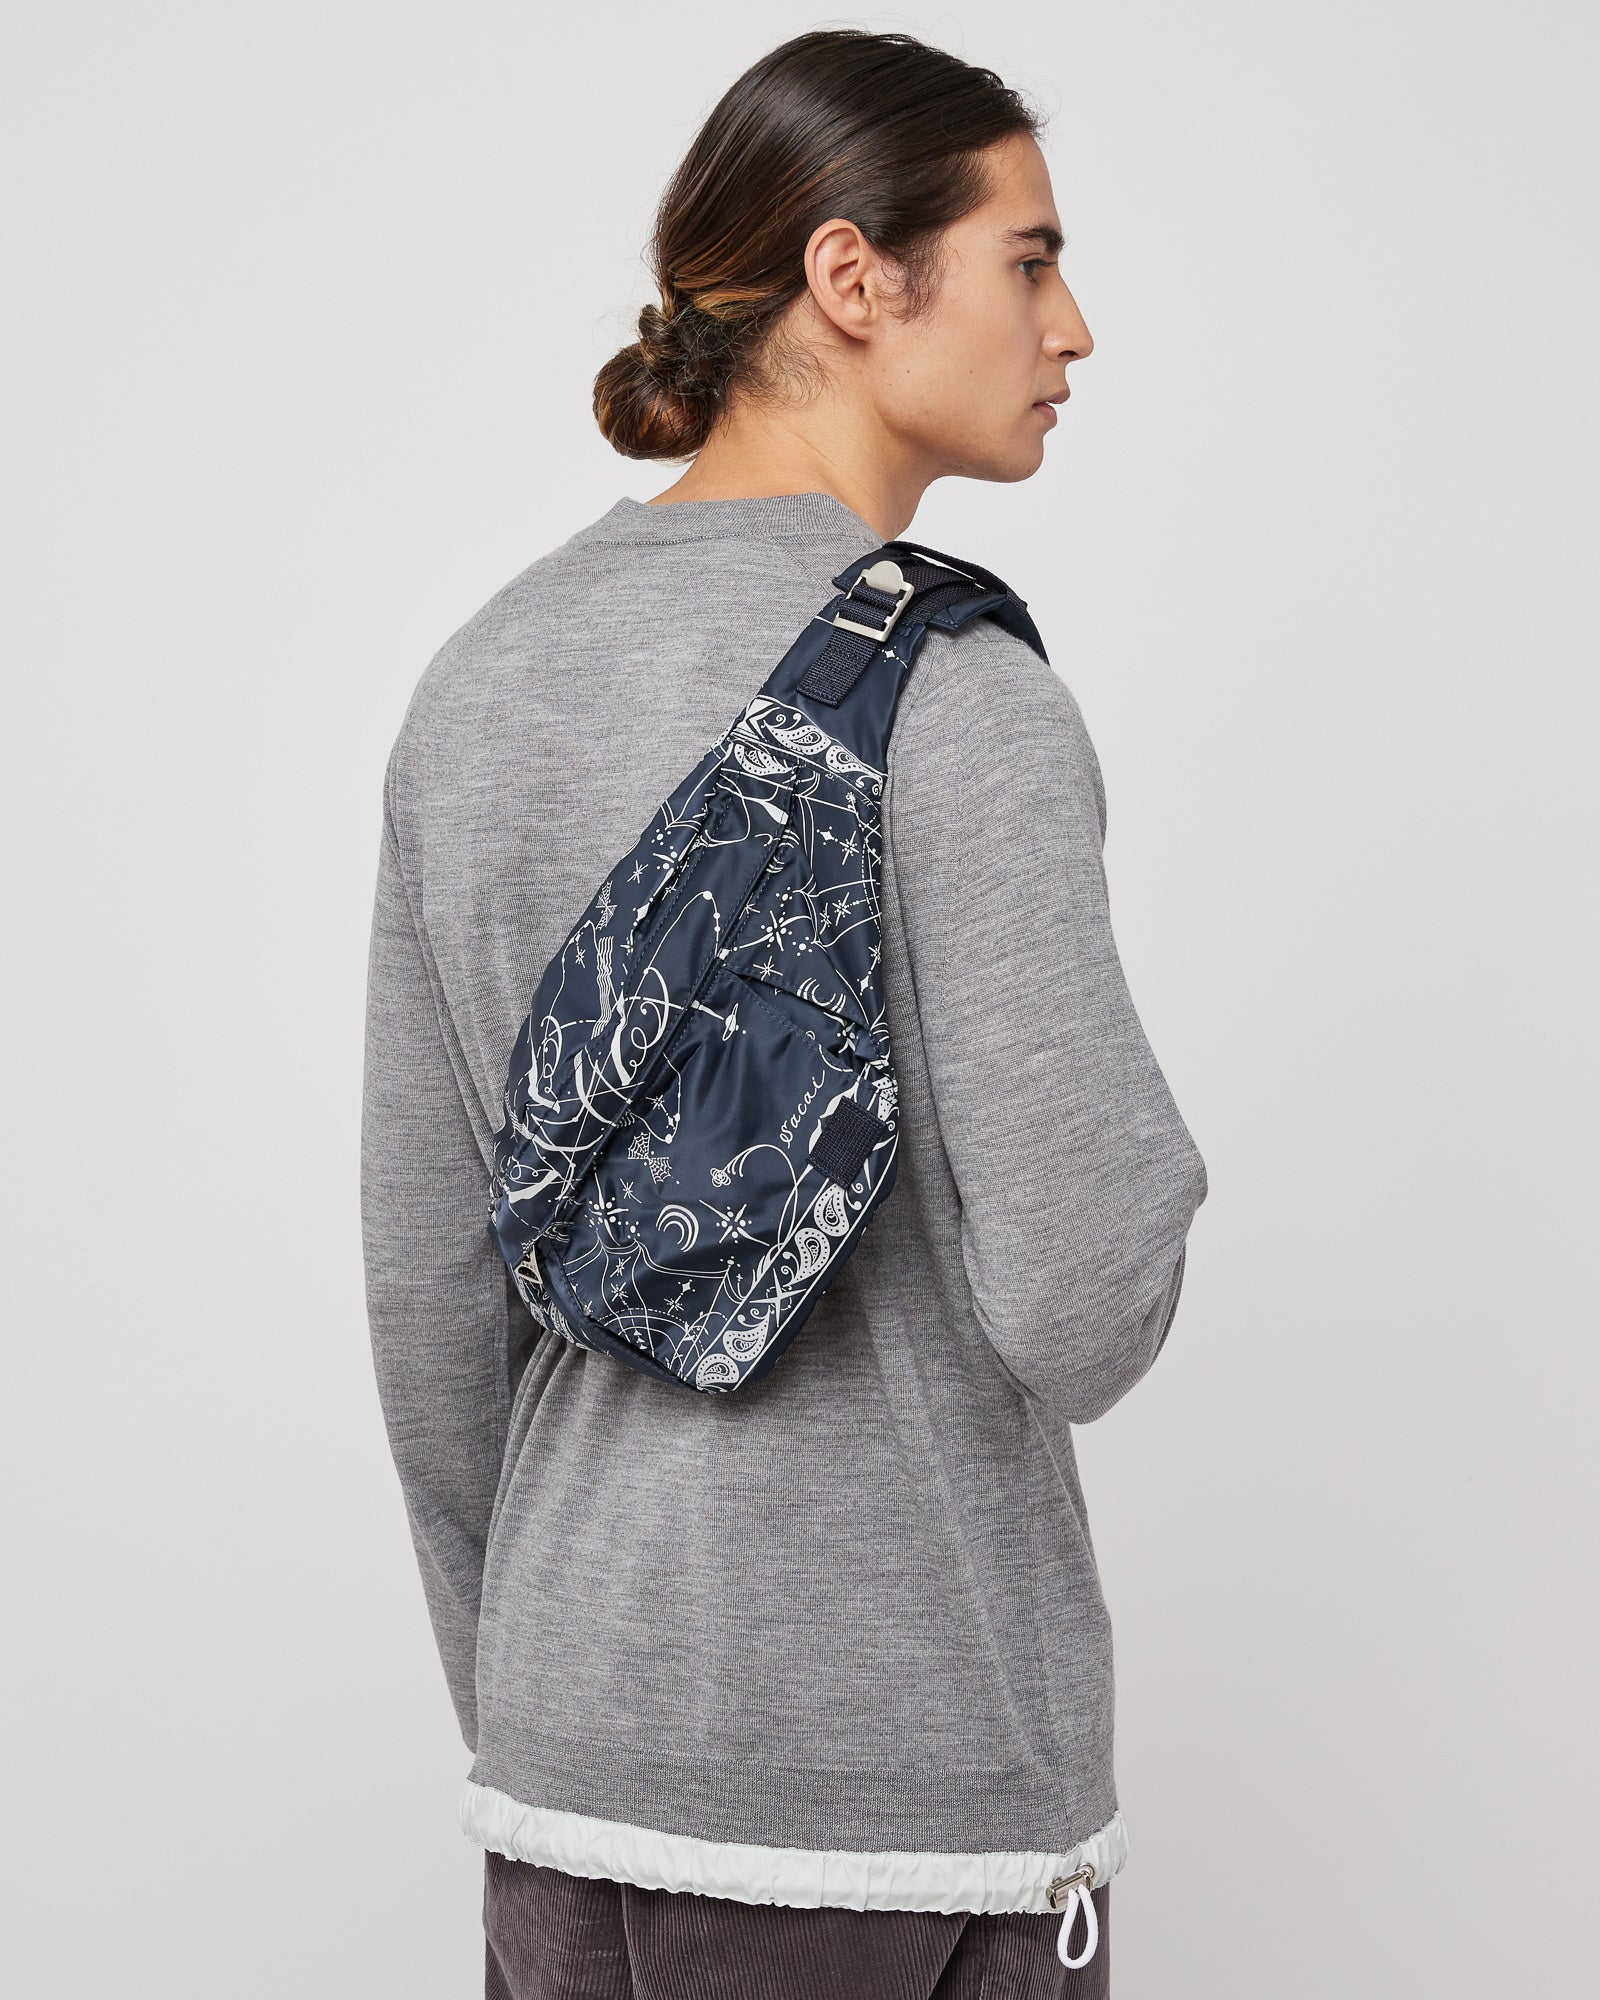 Dr. Woo Bandana Print Nylon Waist Bag in Navy